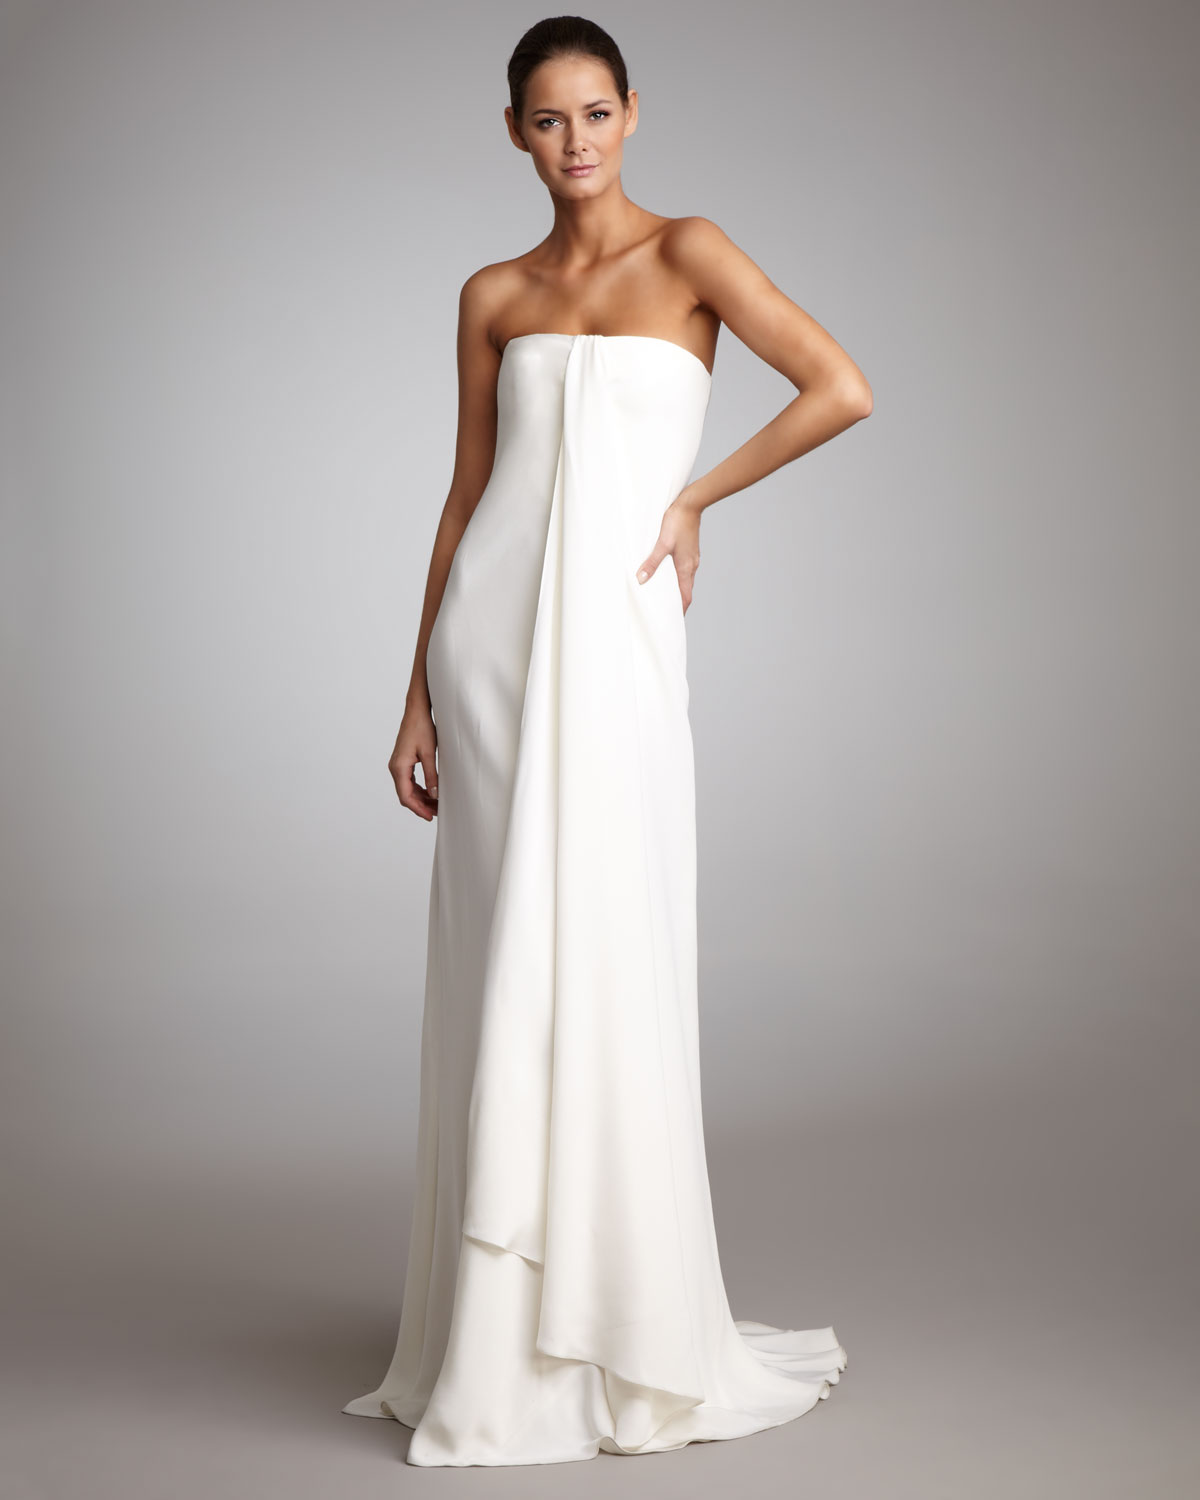 Draped Strapless Dress